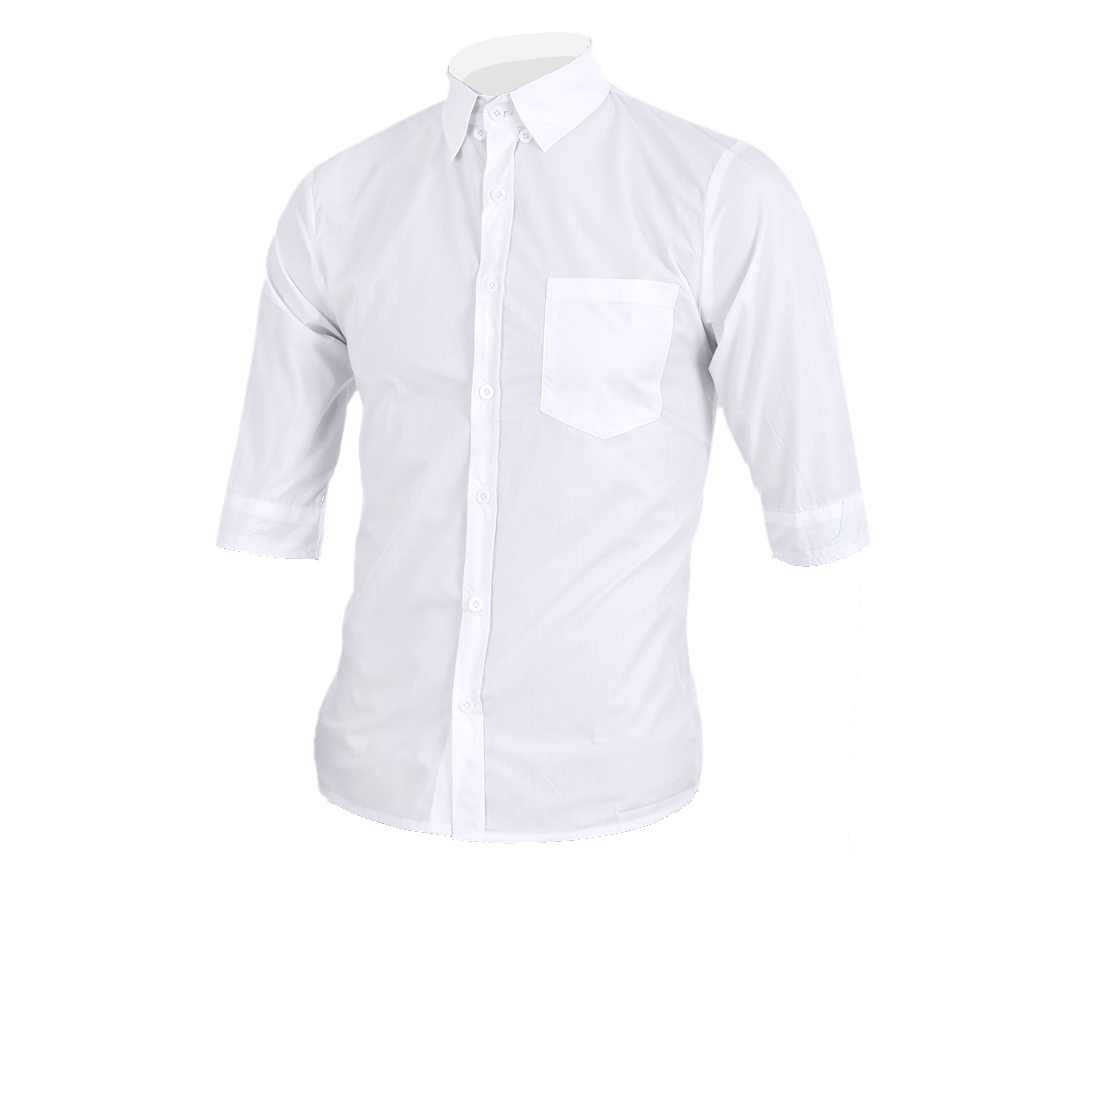 M Men Point Collar Front Button Dowm Stripes Pattern Stylish Shirt White